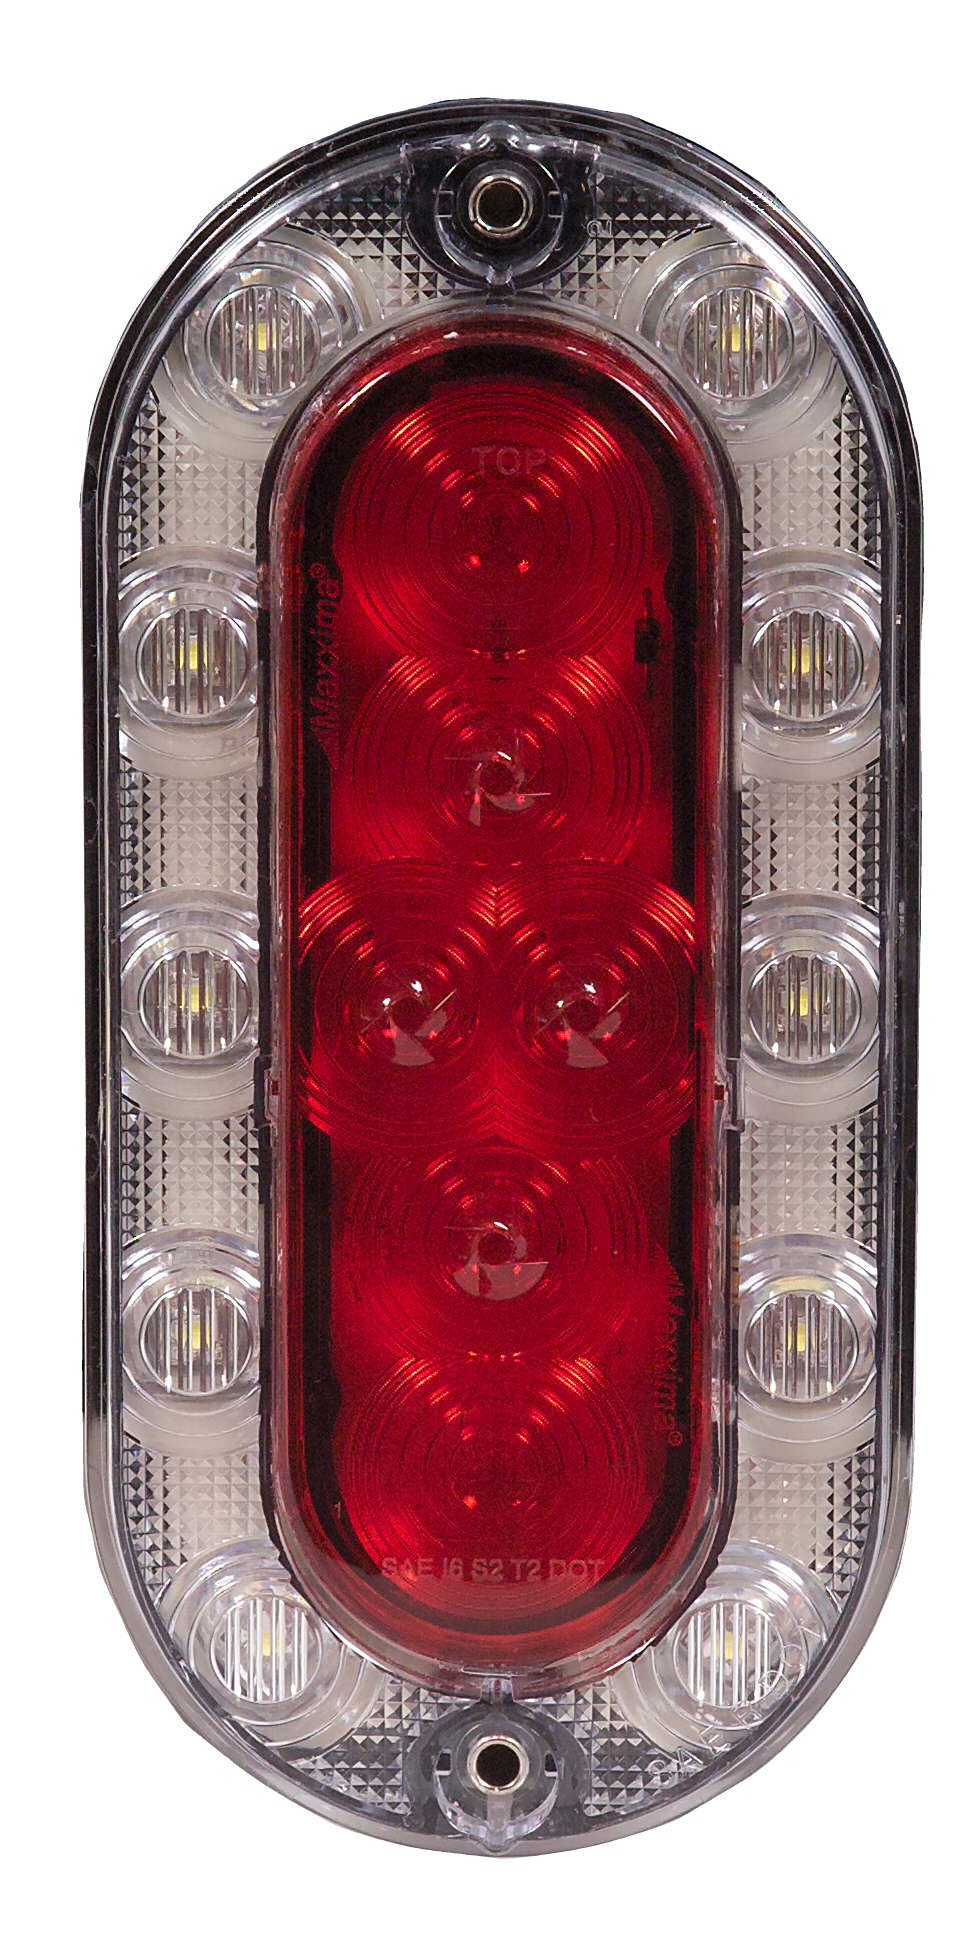 Maxxima M85615R 16 LED Hybrid Series Red/White Oval LED Stop/Tail/Rear Turn and Backup Light by Maxxima